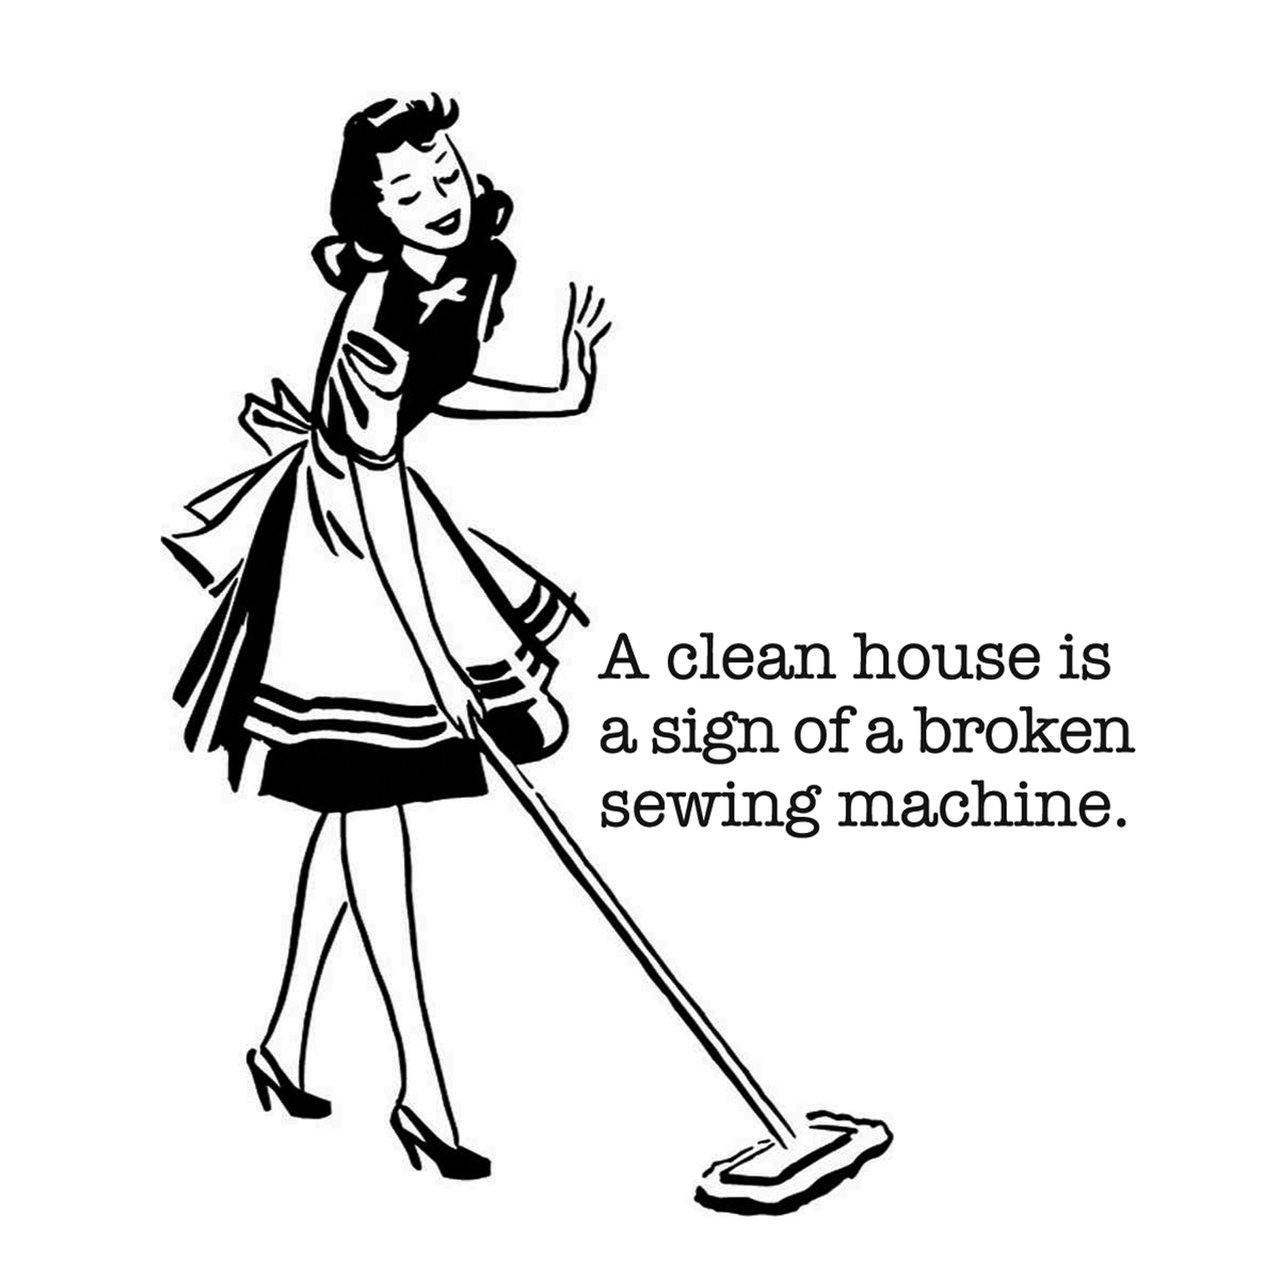 A Clean House... - Pack Of 1 Towel - By Colonial Prints